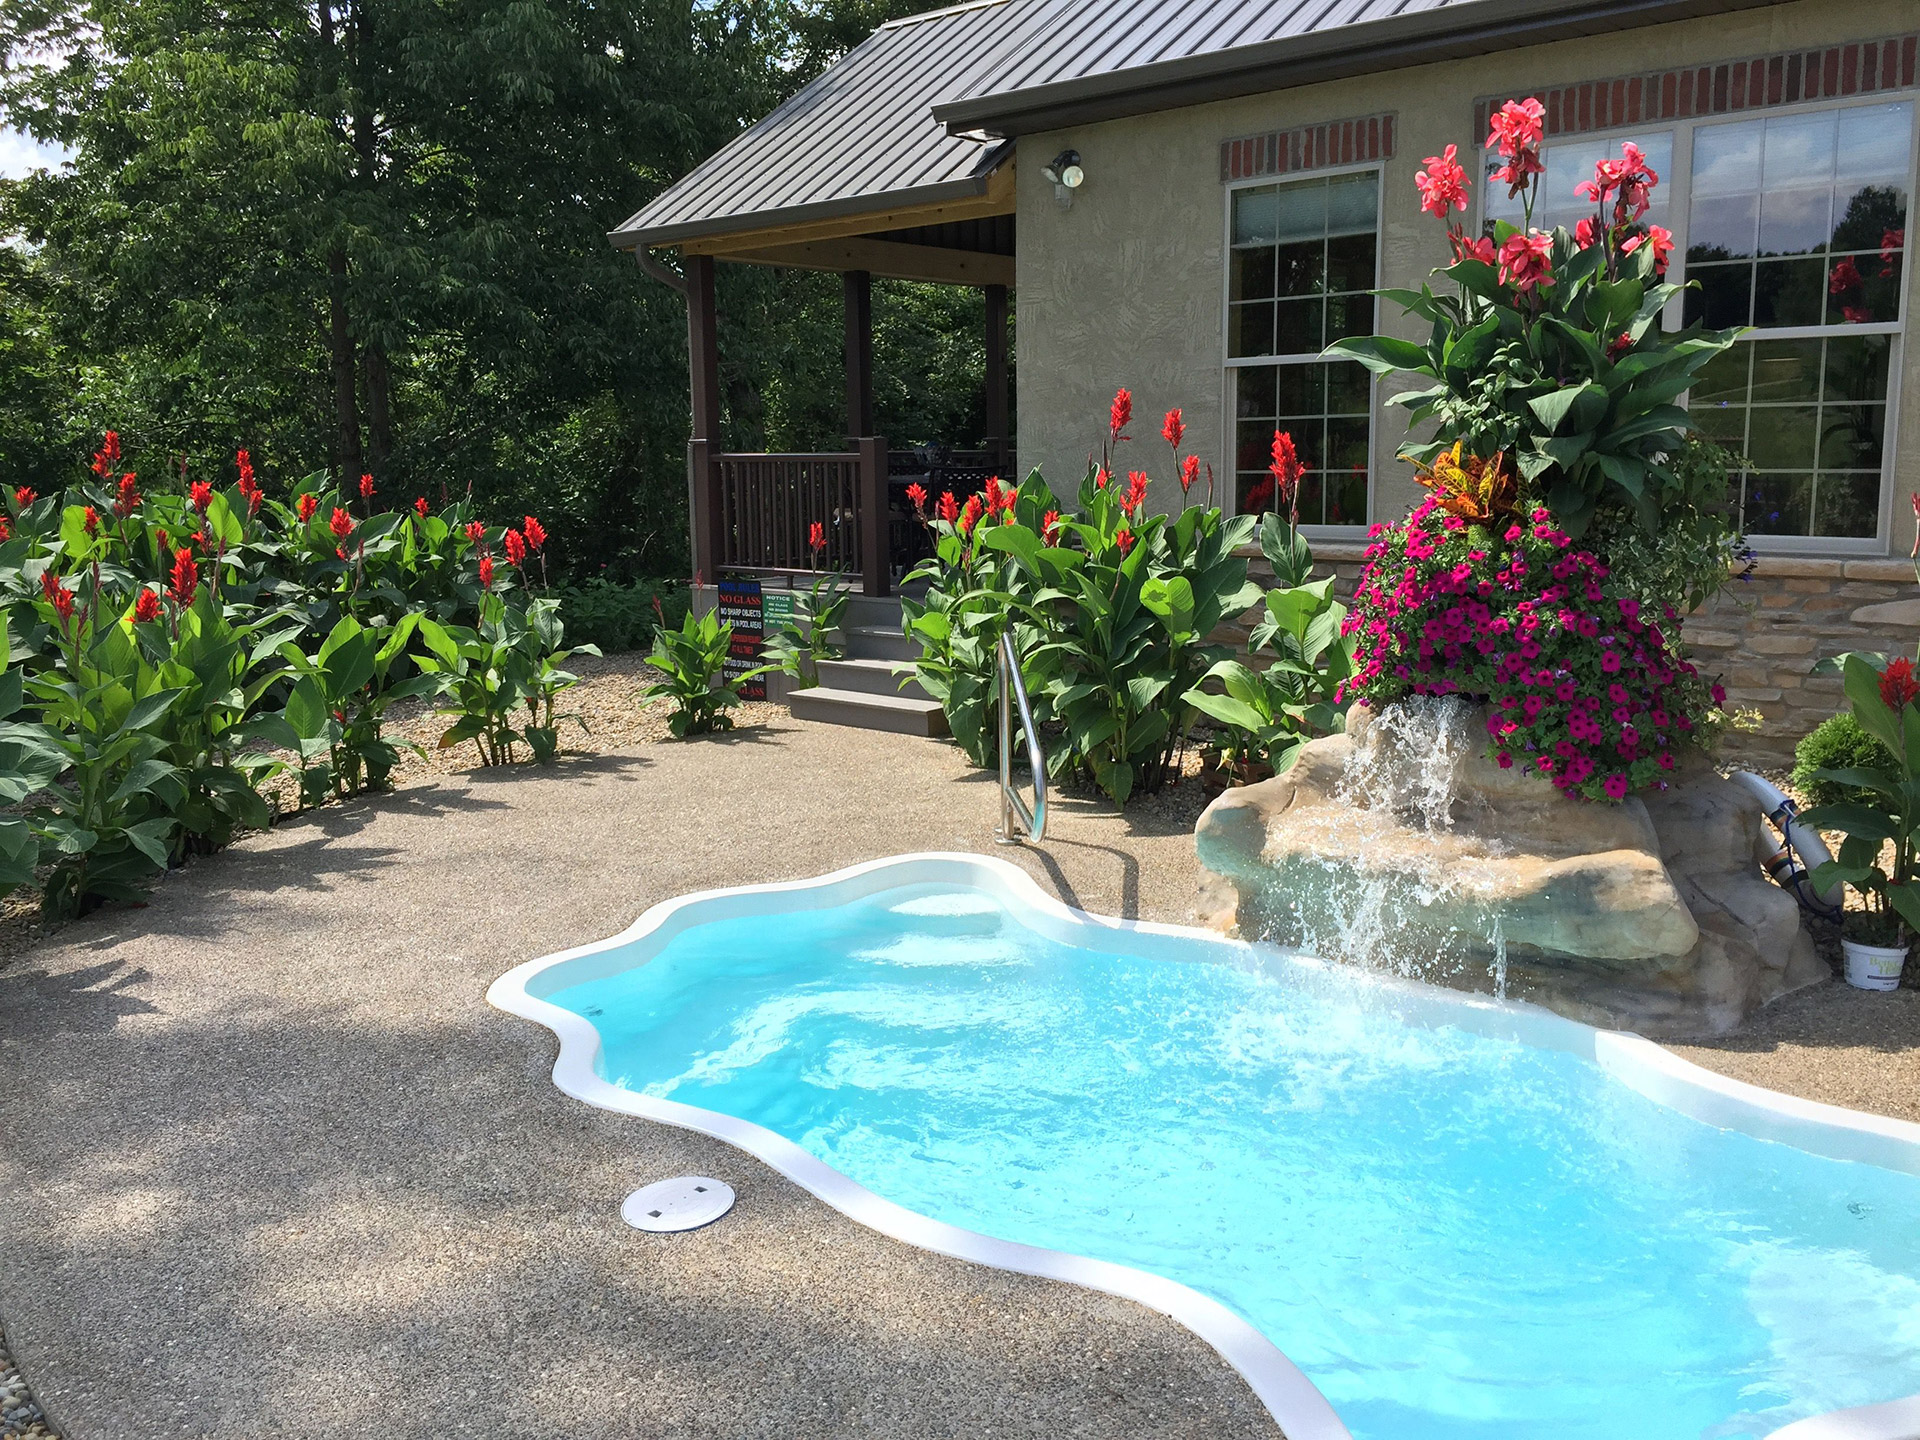 vacation rental a ohio frame hills redawning cabins property cabin logan escape in getaways romantic hocking